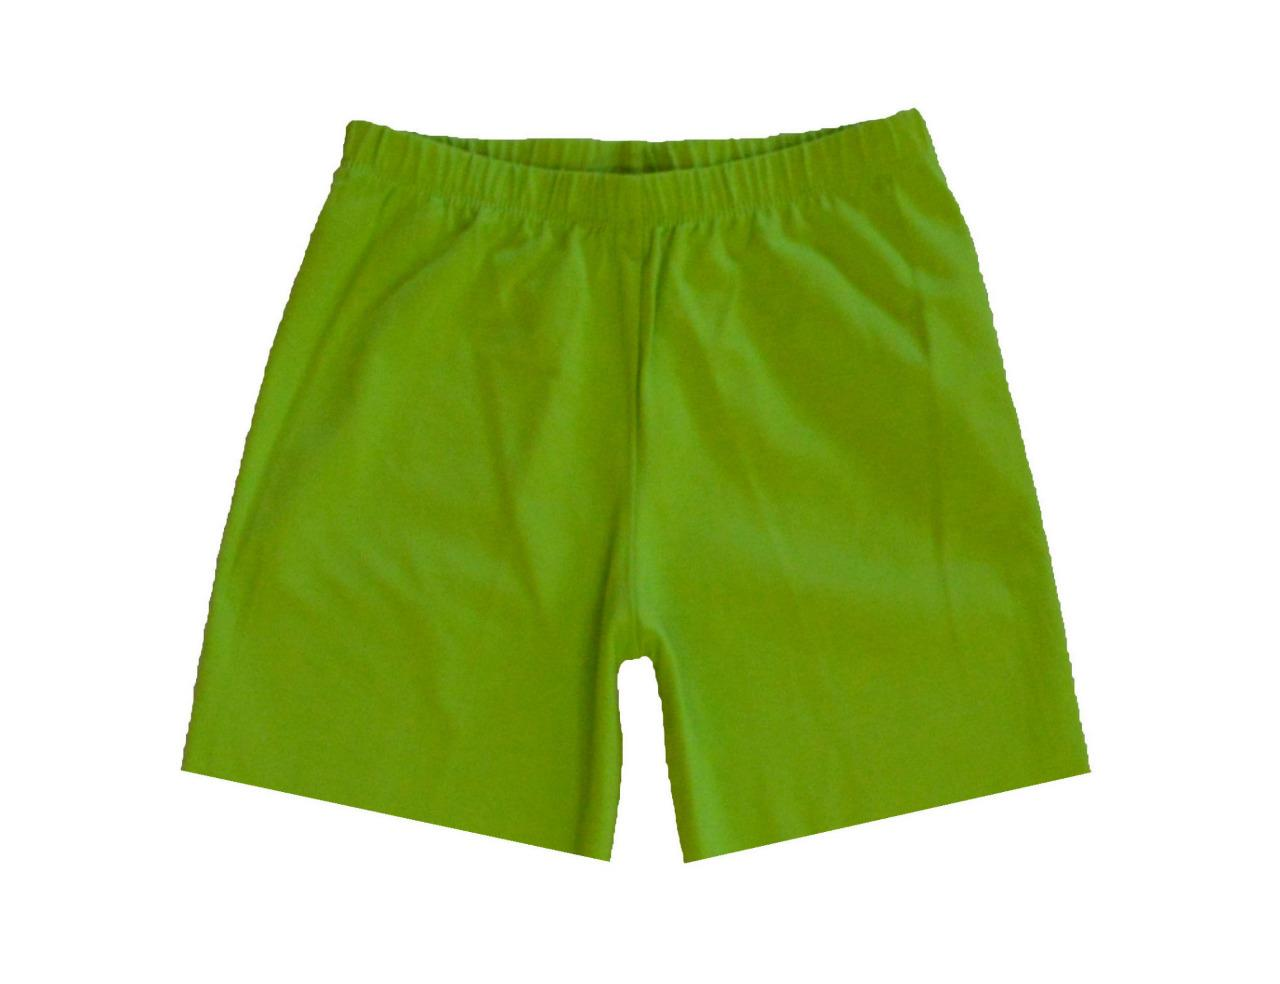 The length of the short is longer than a typical dancer's boy short, and fits more like a pair of biker shorts than anything else. Not the fit or style she was looking for. After experimenting with this brand, we've gone back to Capezio.